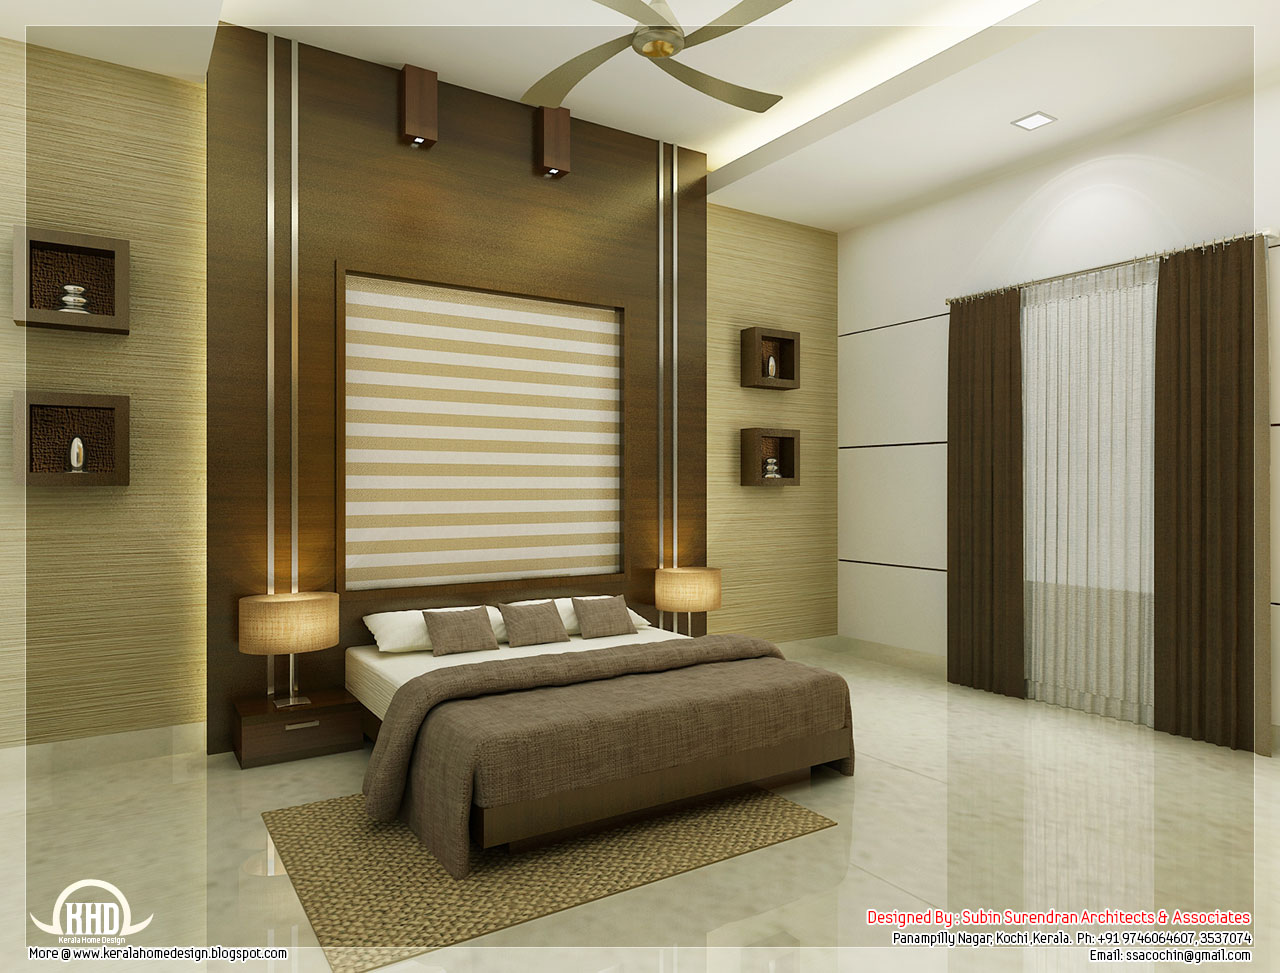 Fabulous Beautiful Interior Design Bedrooms 1280 x 973 · 226 kB · jpeg